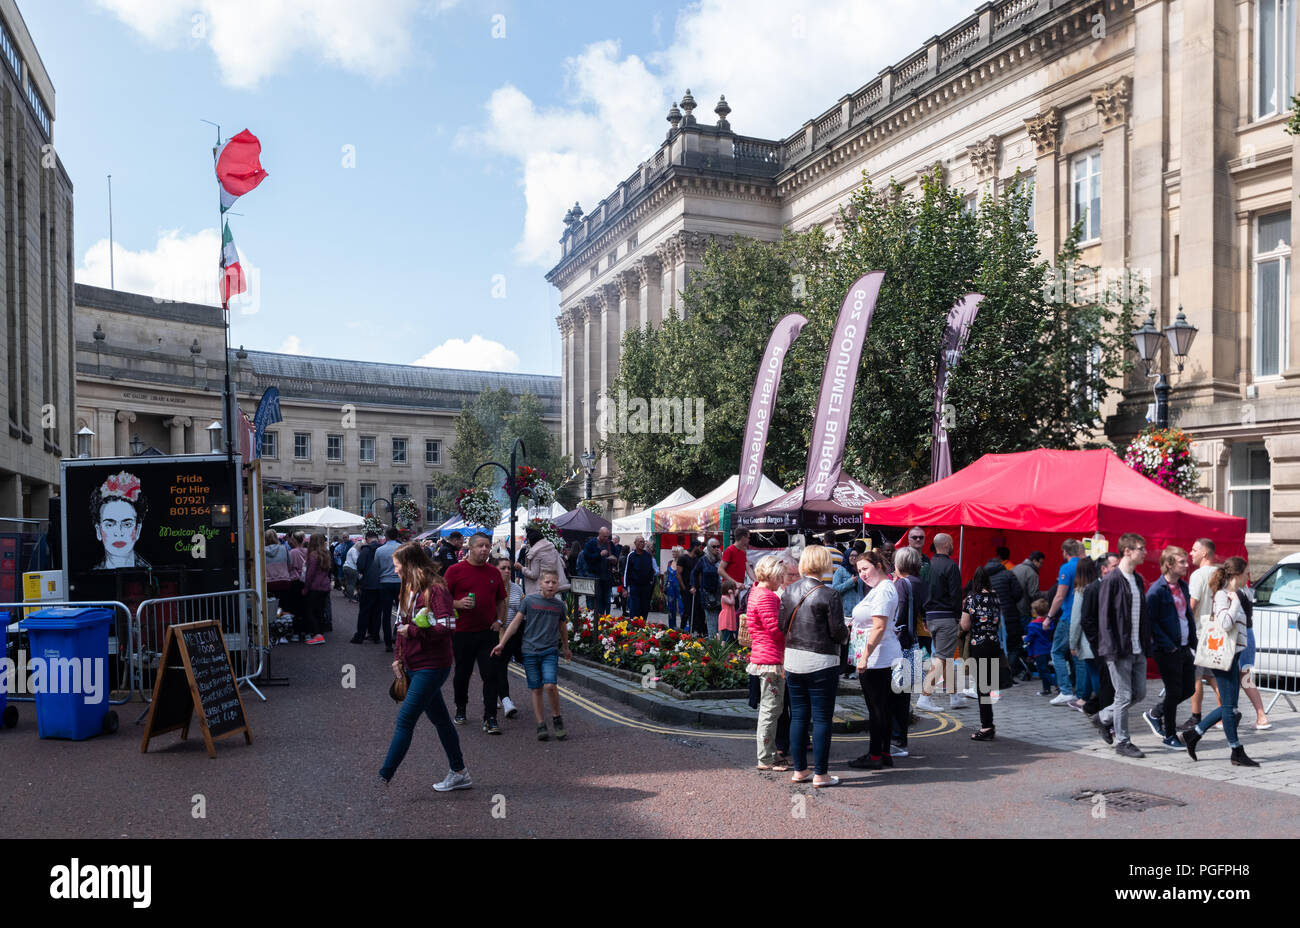 Bolton, UK. 25 August 2018. Photos taken on the busy Saturday afternoon of the three day food and drink festival at Bolton, Manchester which lasts from Friday 24th August to Monday 27th August. The festival is the largest in the North West of England. Credit: Ruaux/Alamy Live News - Stock Image